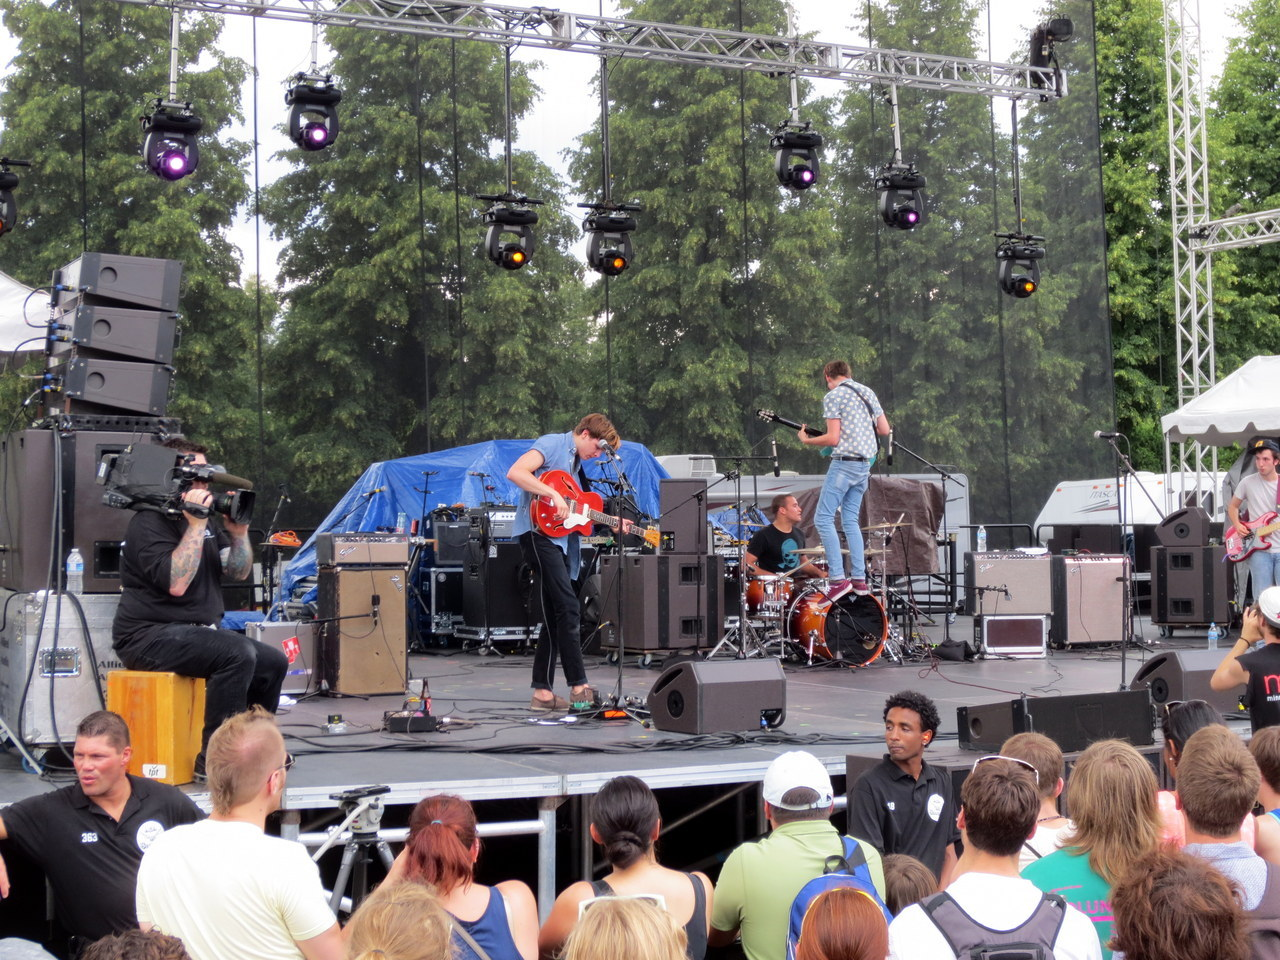 Howler, performing at Rock the Garden. #Minneapolis